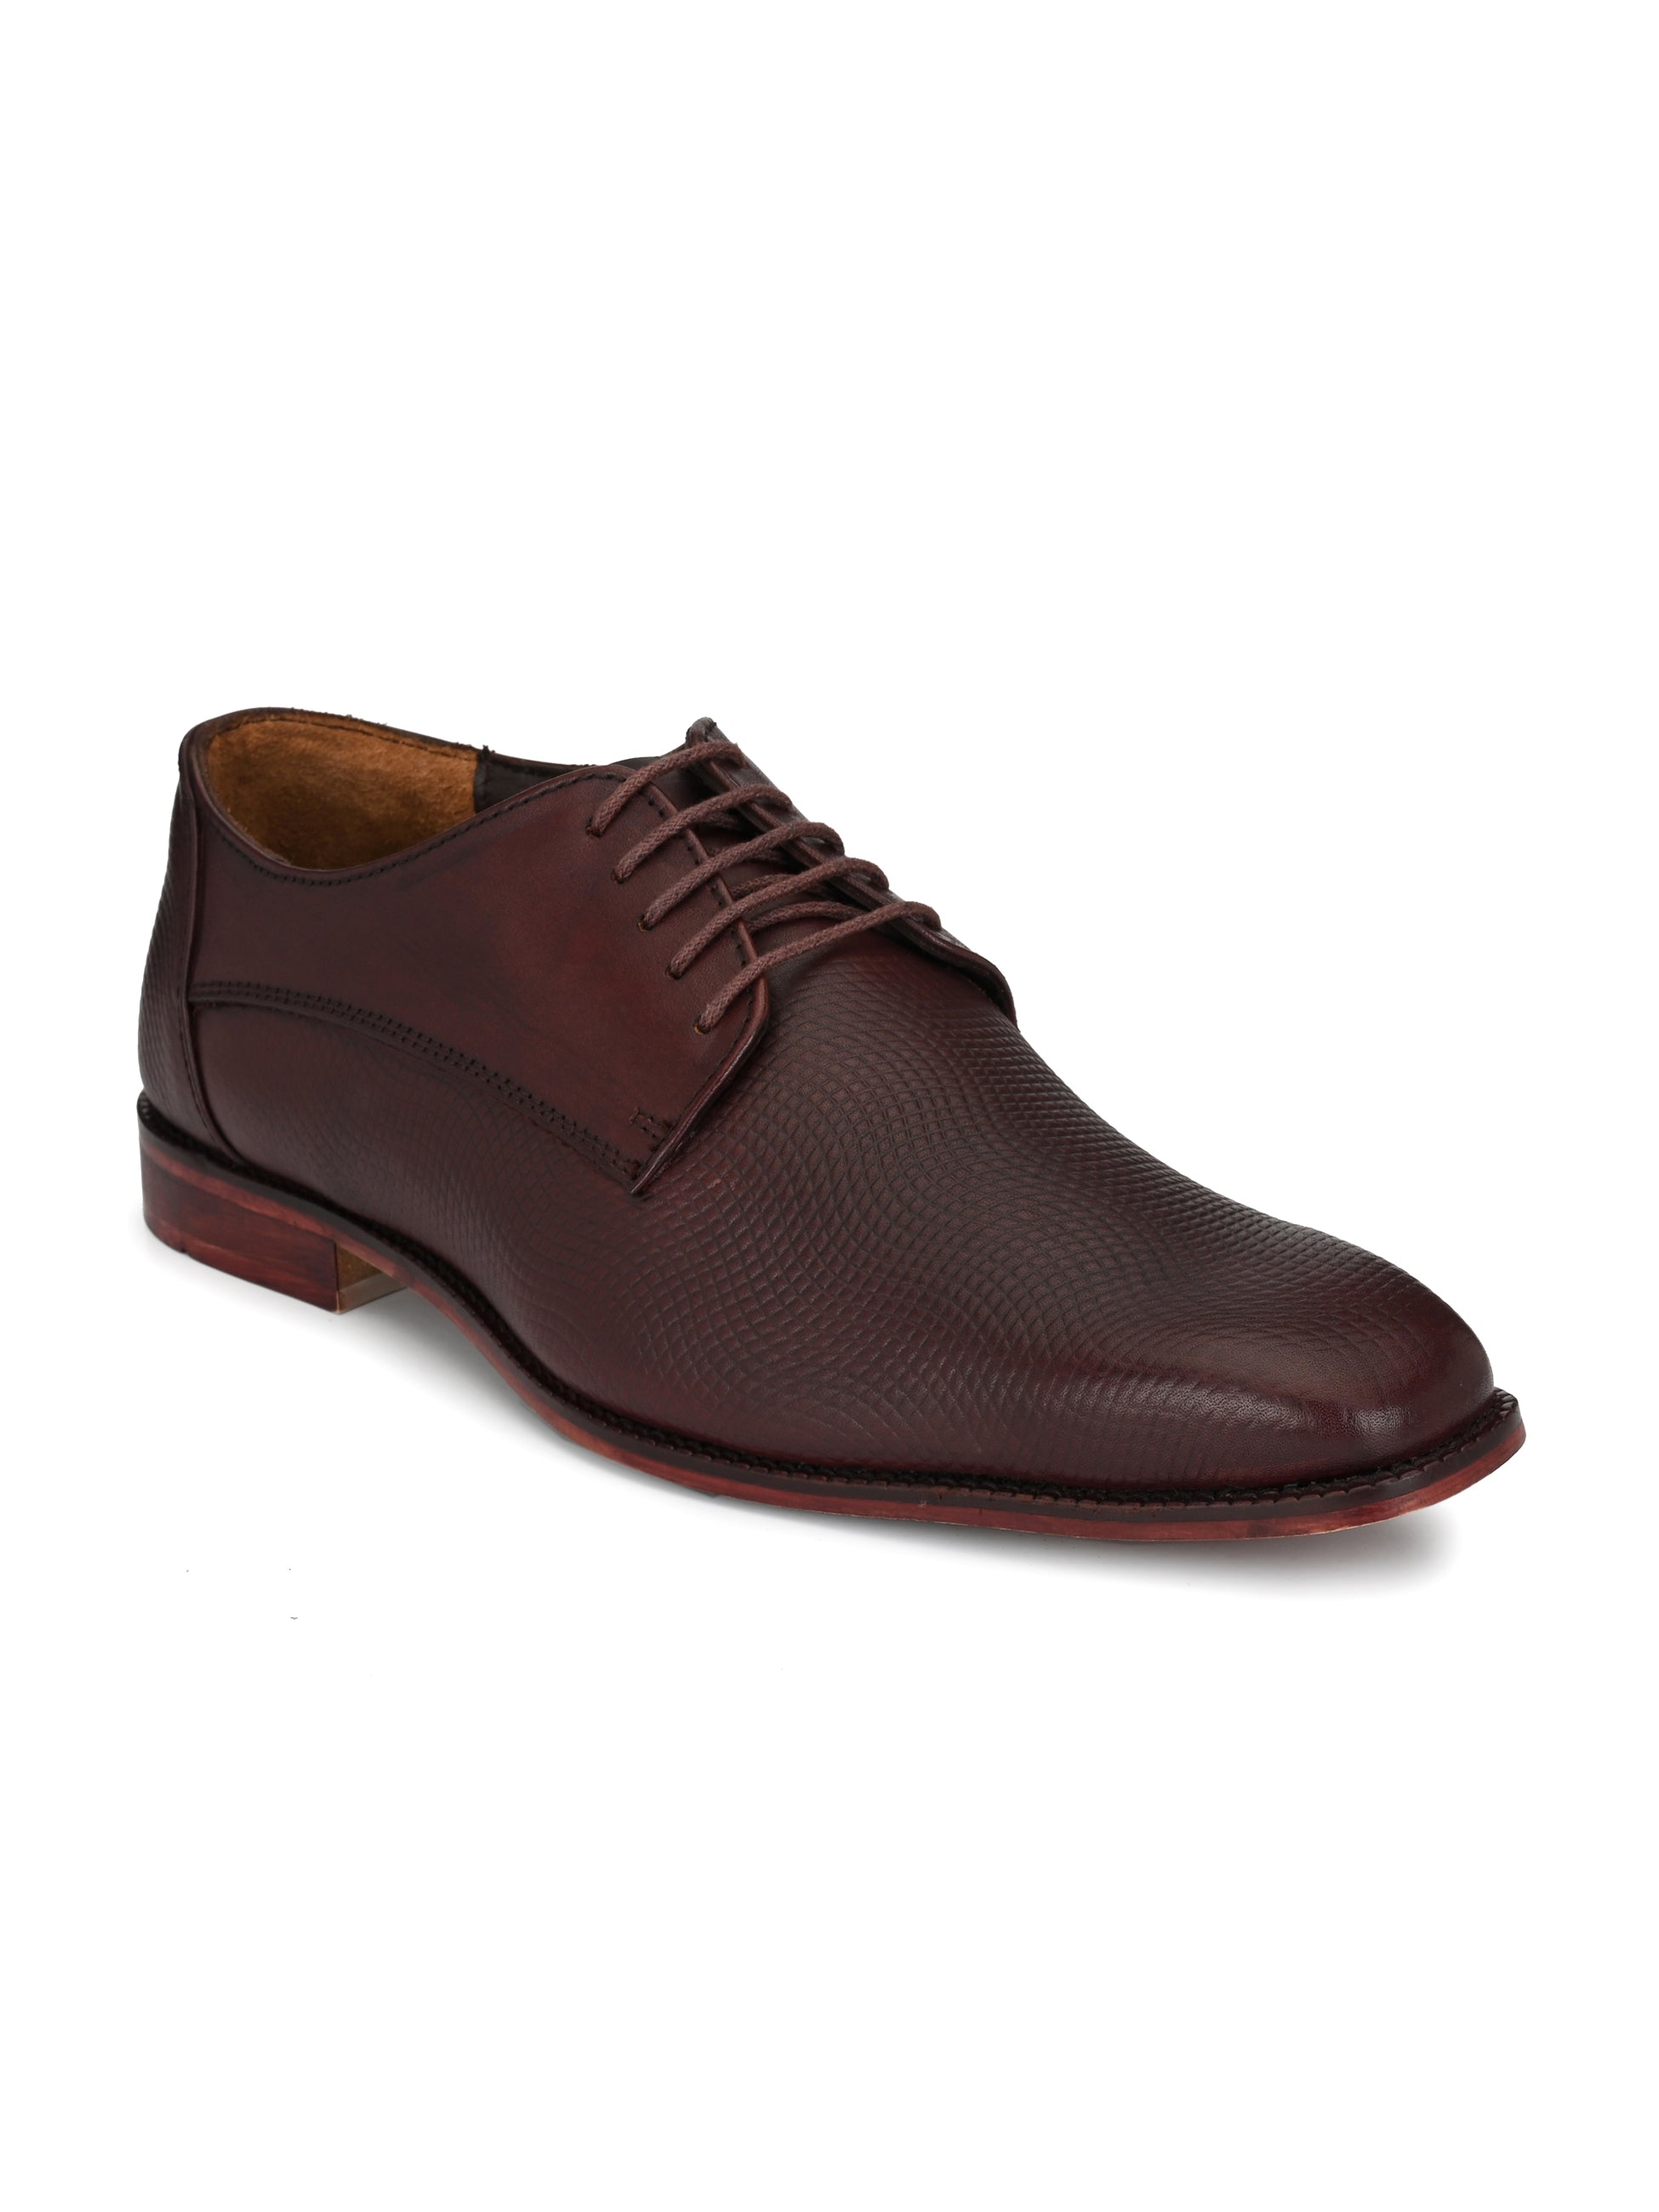 Brown Leather Elite Shoes - shoegaro